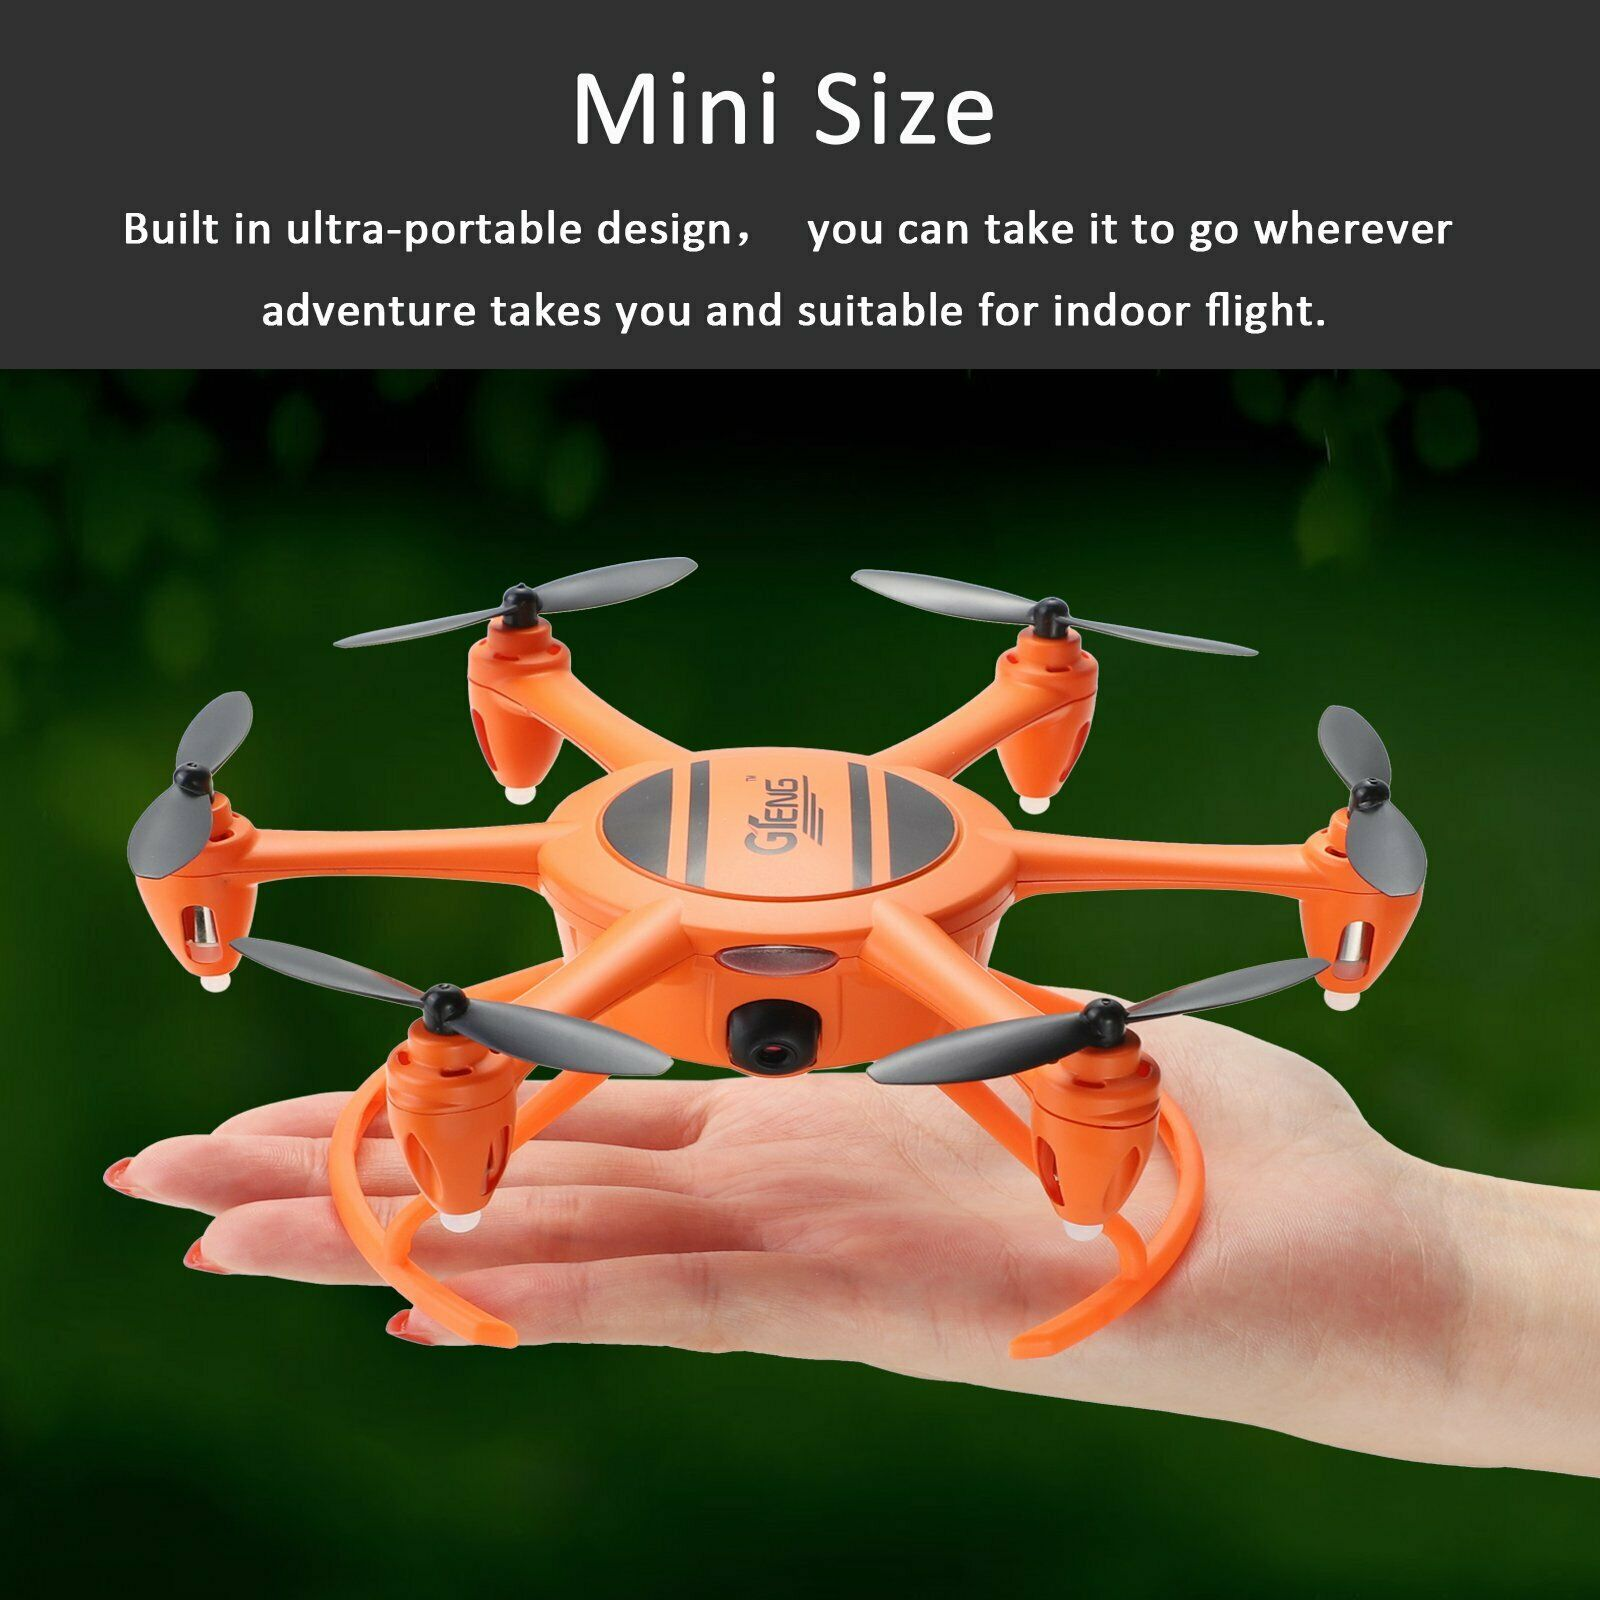 Gteng 2.4G 4CH 6 Axis Gyro Hovering RC Quadcopter with HD WIFI Camera Drone FPV quadcopter|RC Helicopters| |  - title=